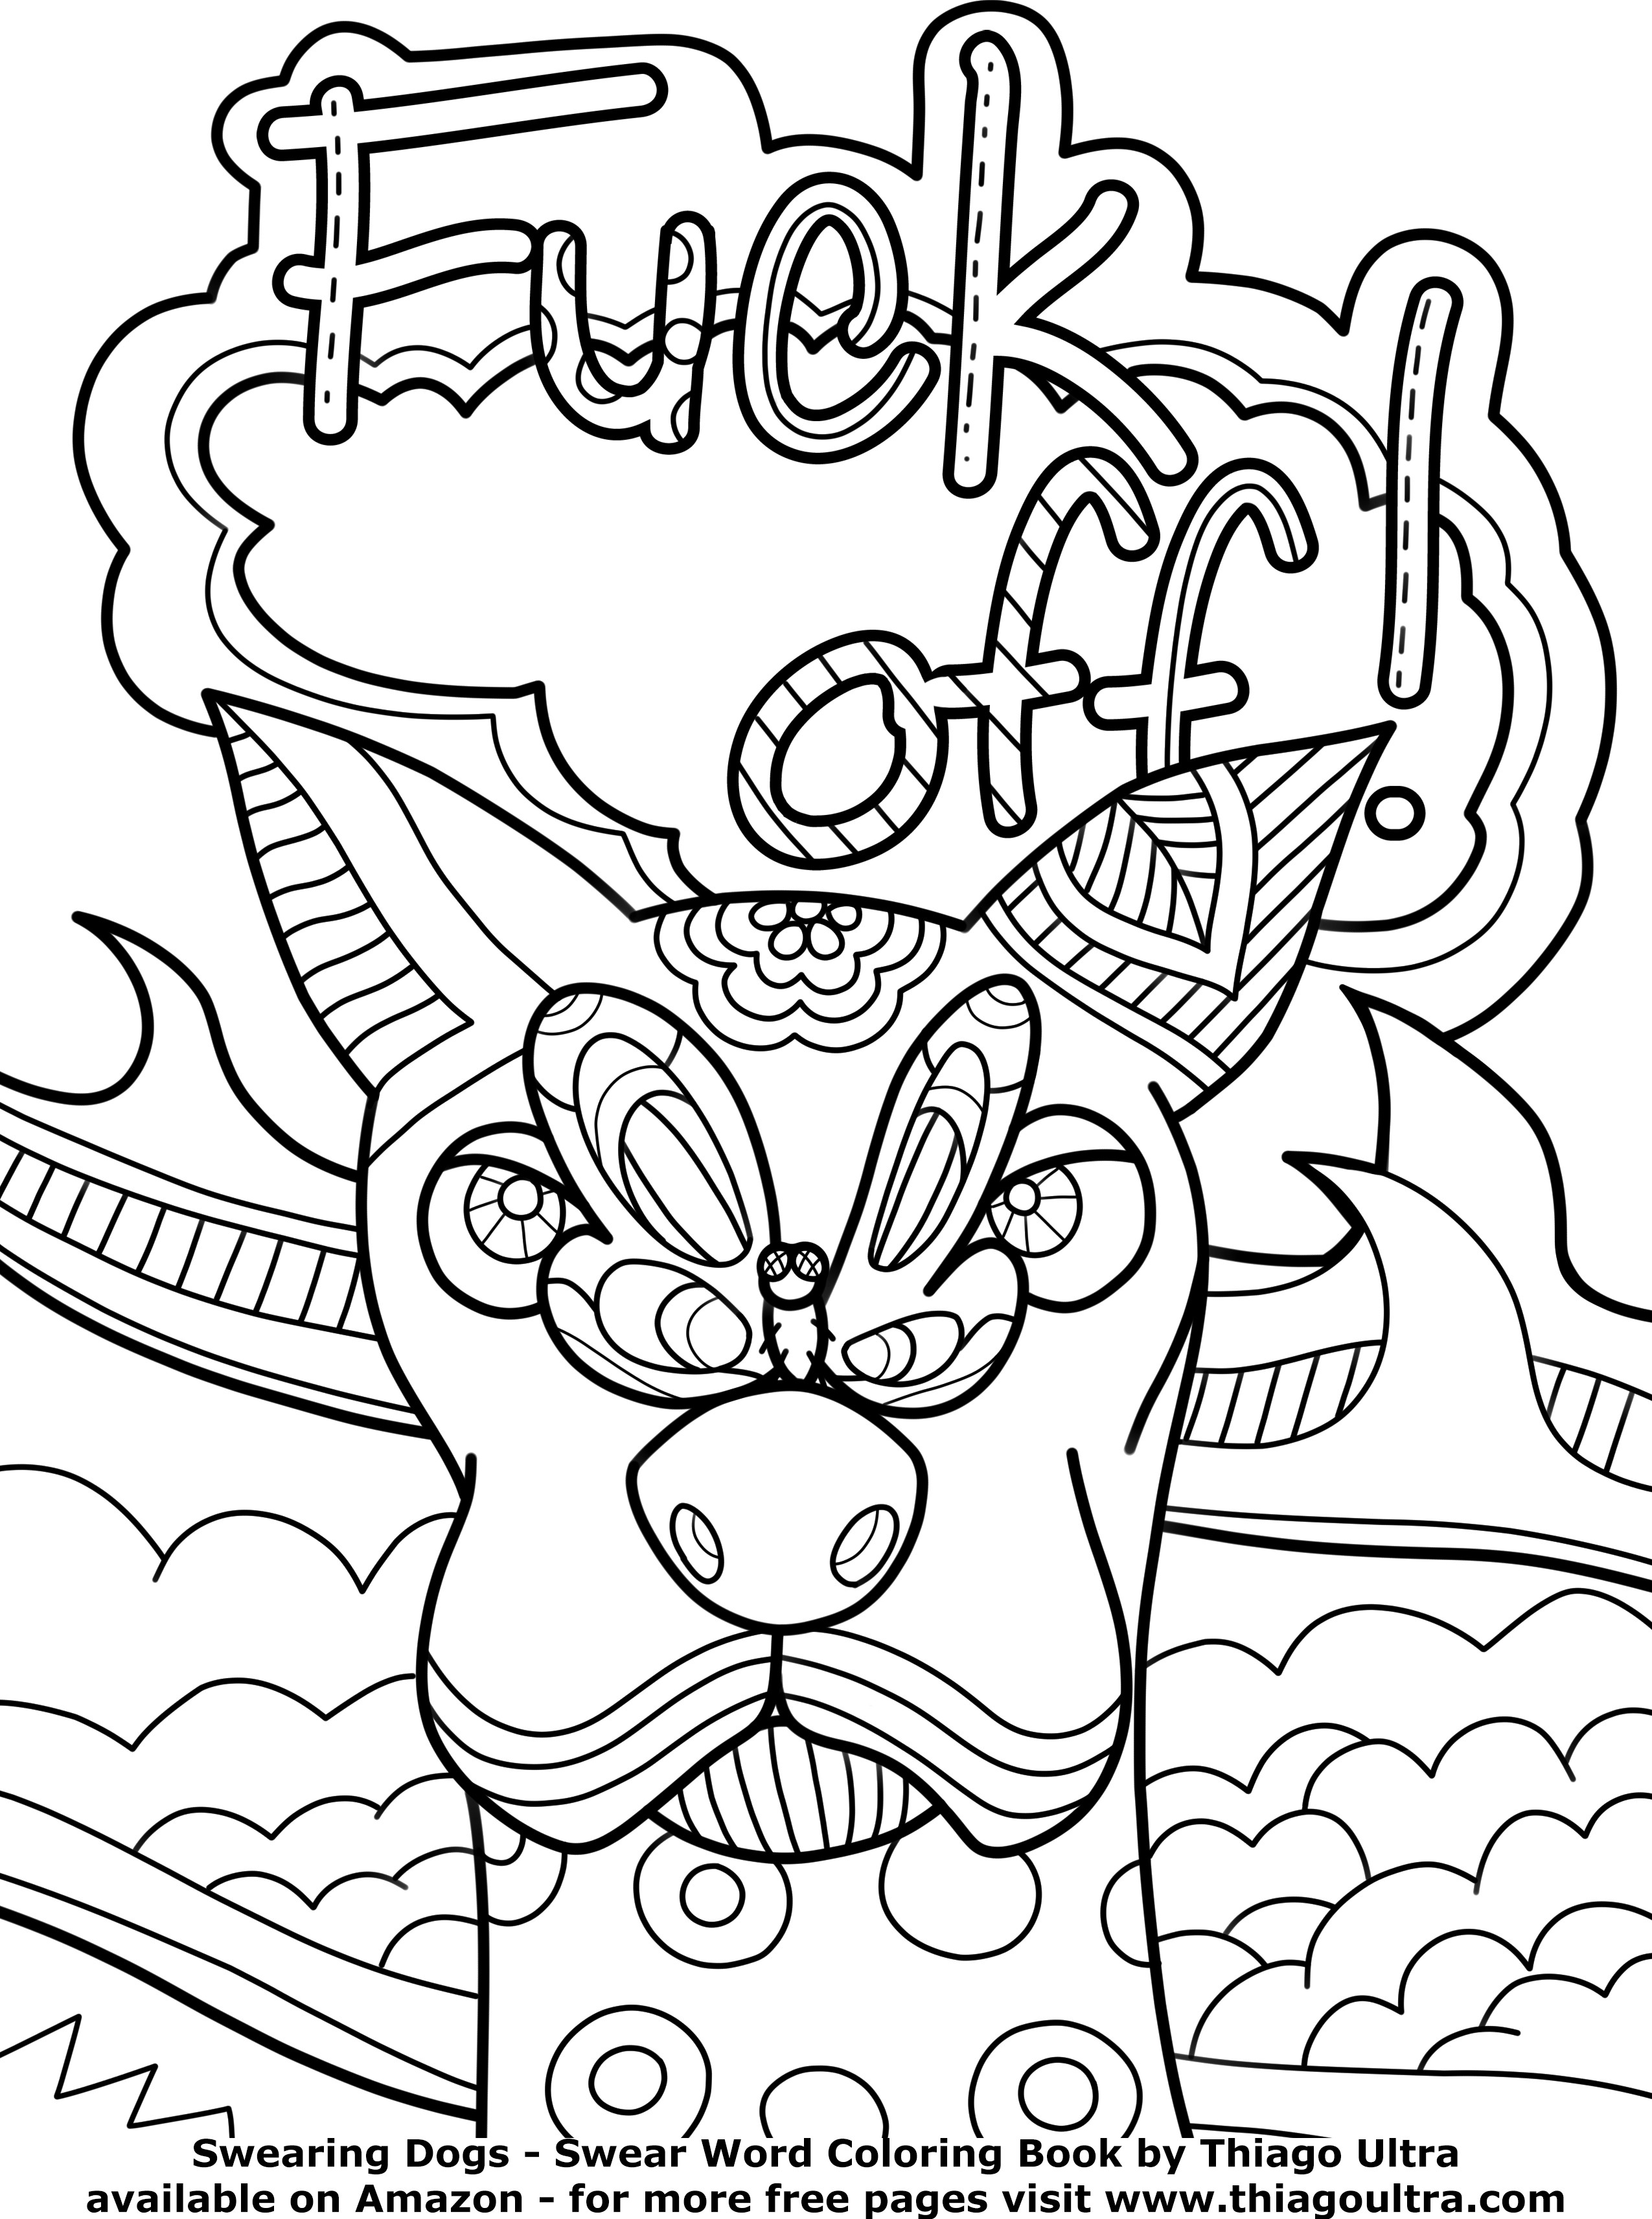 Swear Word Coloring Pages Printable Free  Swear Word Coloring Pages Free Free Printable Adult